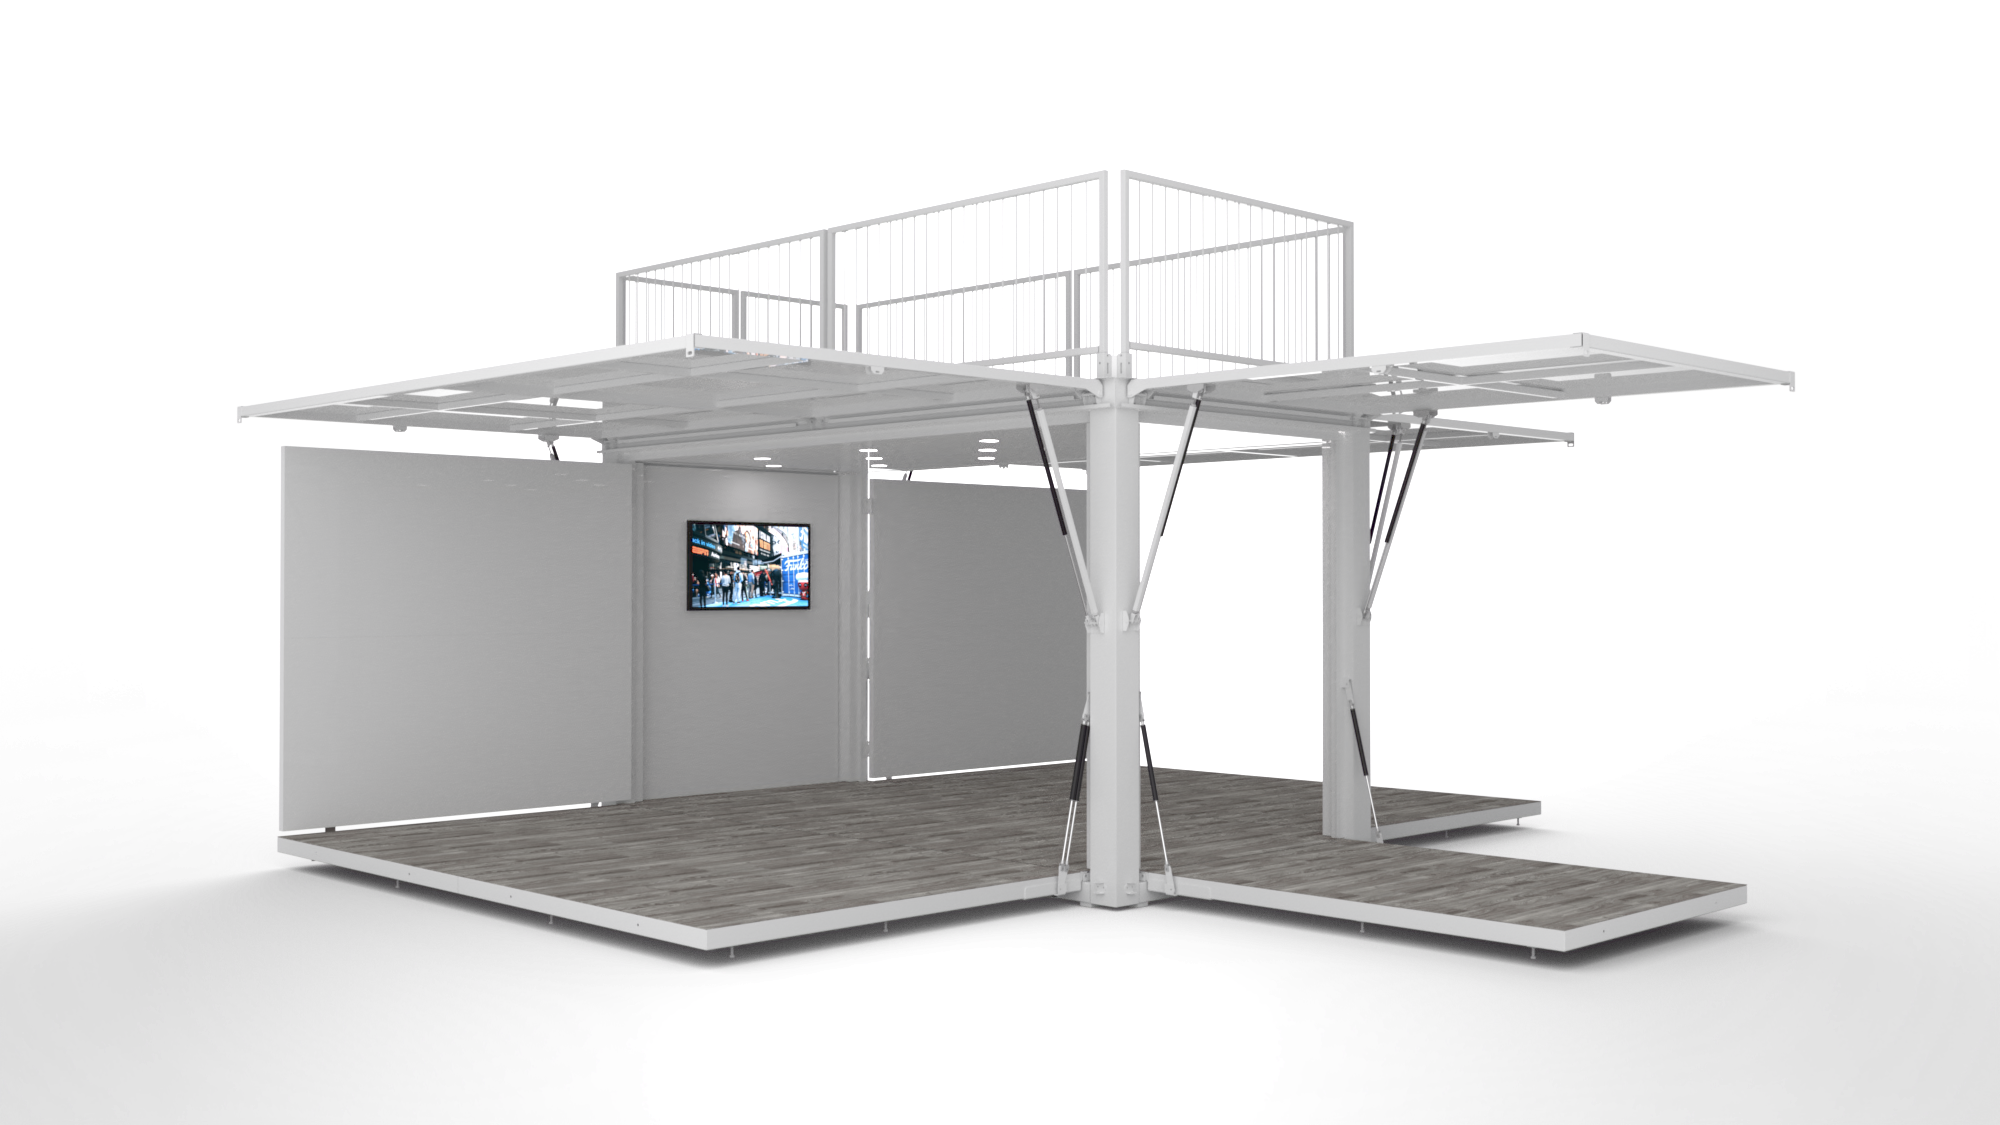 Rendering of a shipping container that doubles as a display